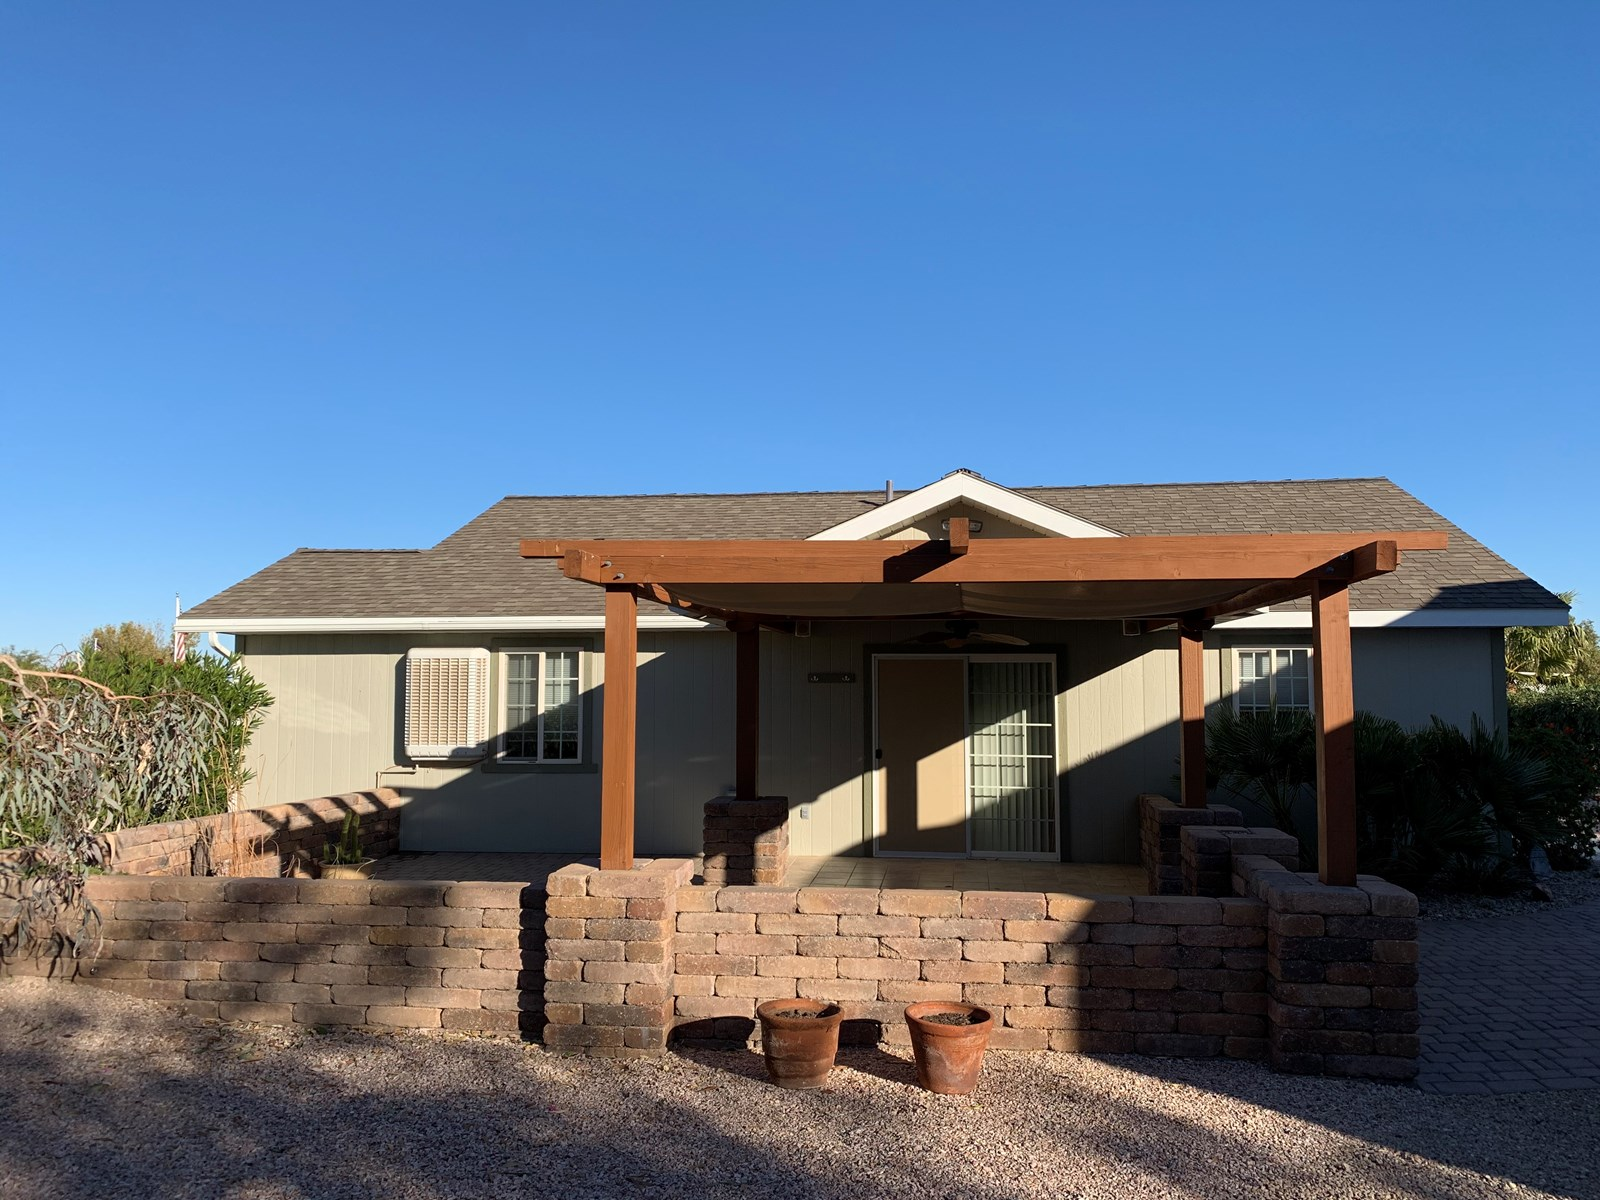 Two Bedroom with Garage in Salome, AZ